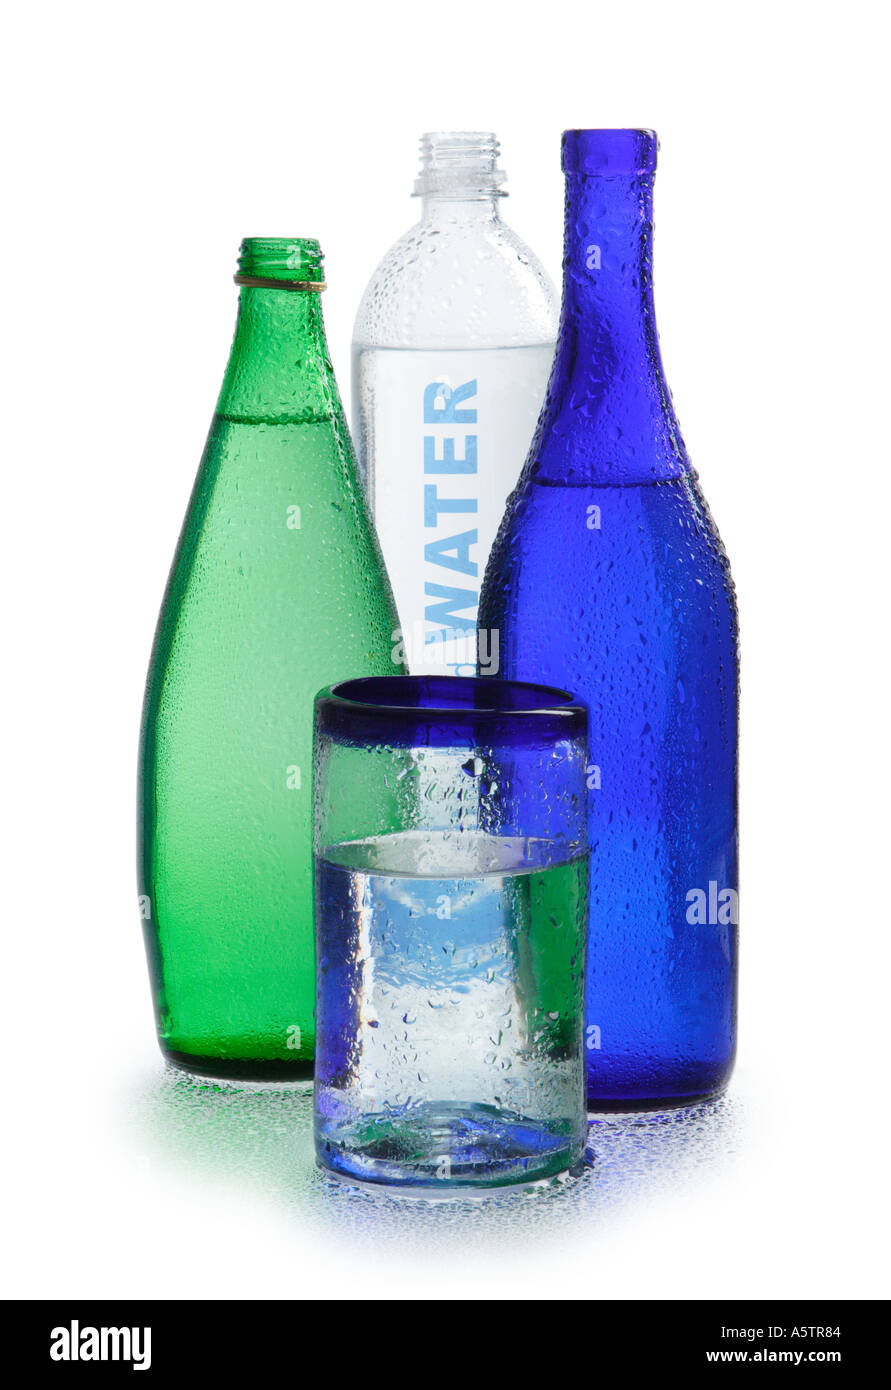 Water Bottles and glass of water - Stock Image